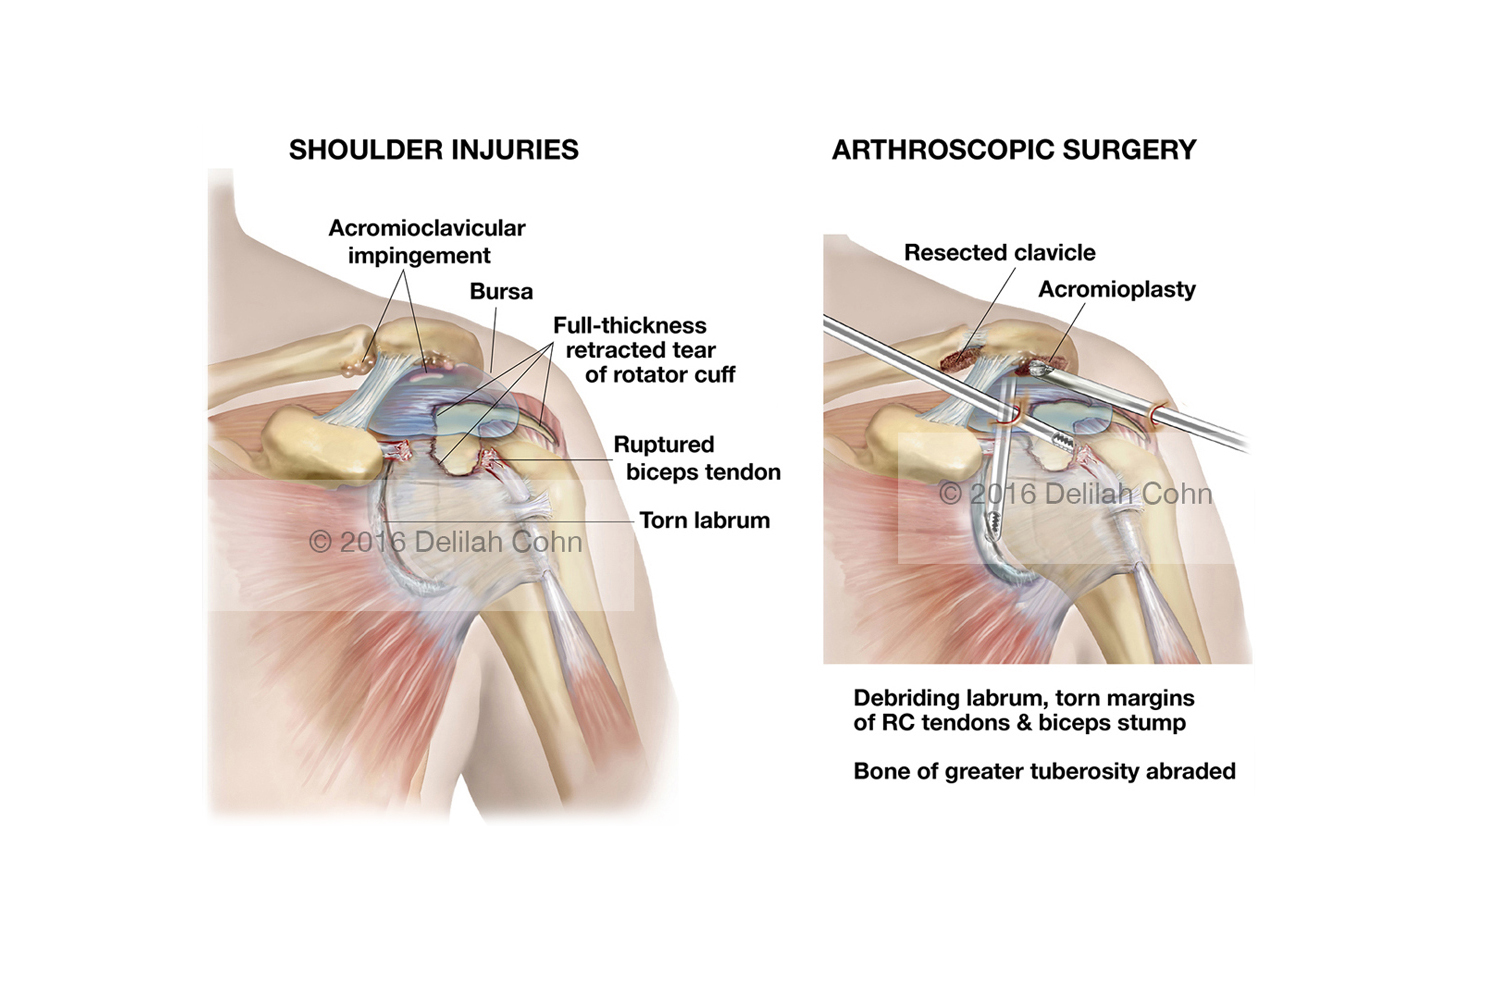 Shoulder injuries and Arthroscopic Surgical Repairs